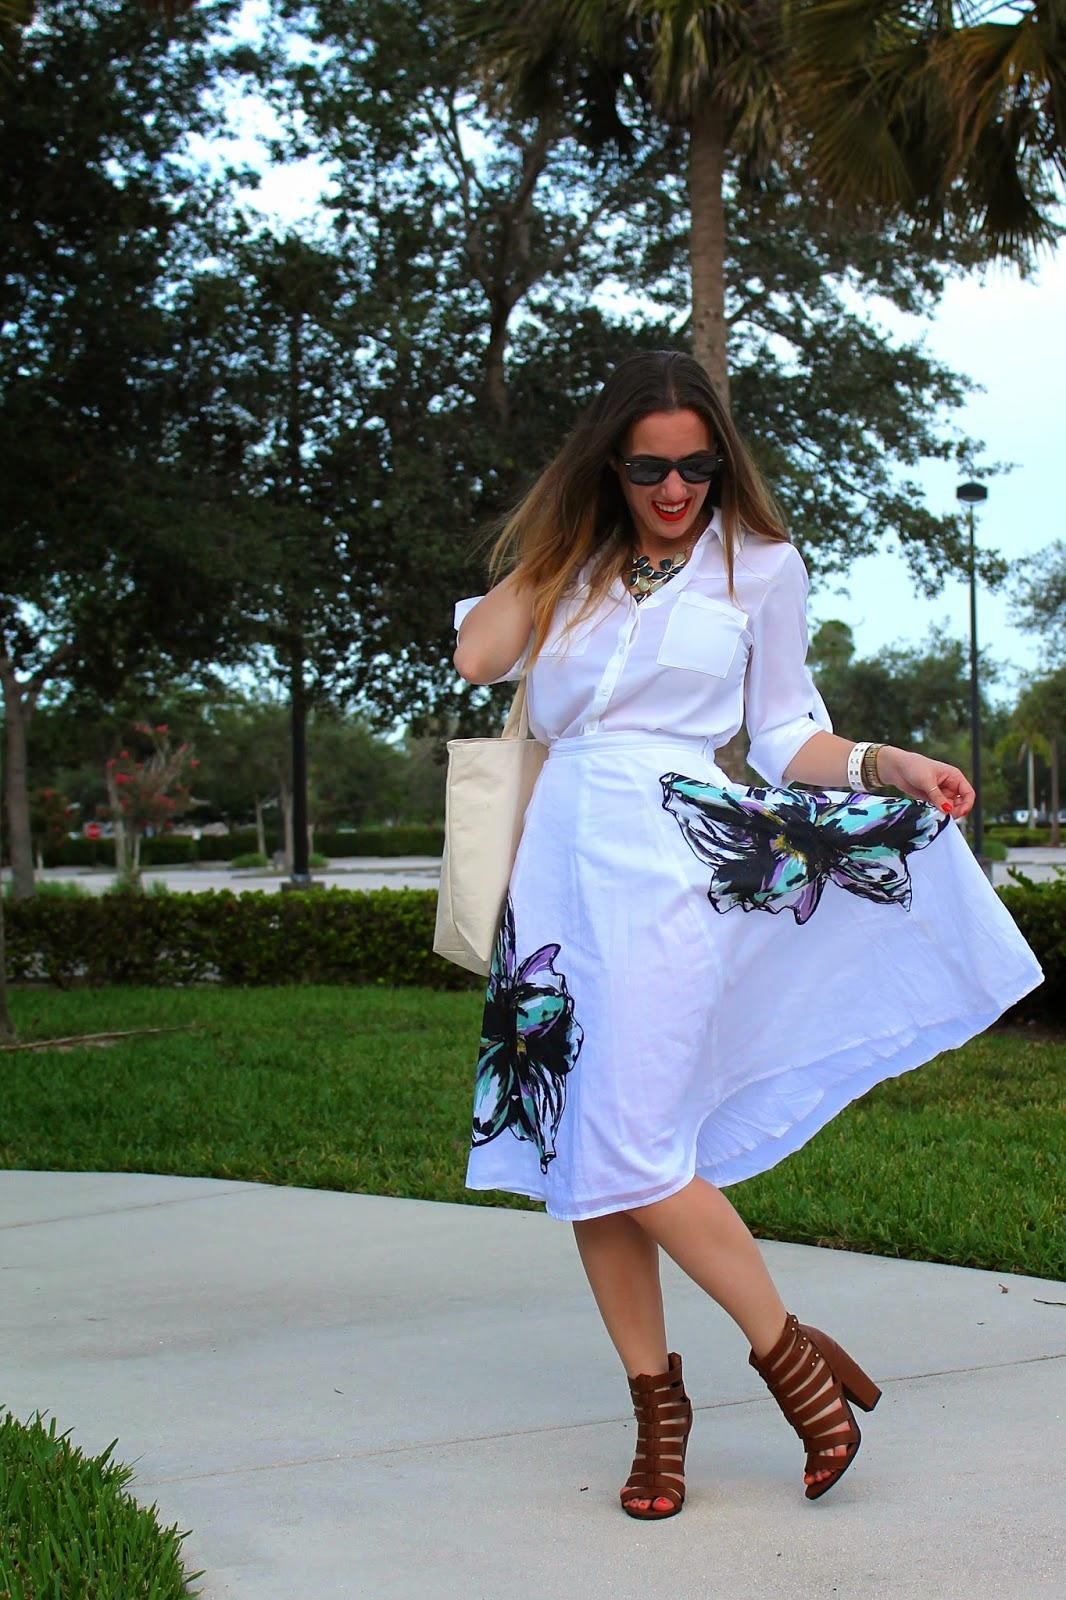 eShakti, Express, Steve Madden, Nordstrom, Timex, Forever 21, Ray-Ban, Gap, street style, fashion blog, what I wore, Miami fashion blogger, Miami style blog, summer whites